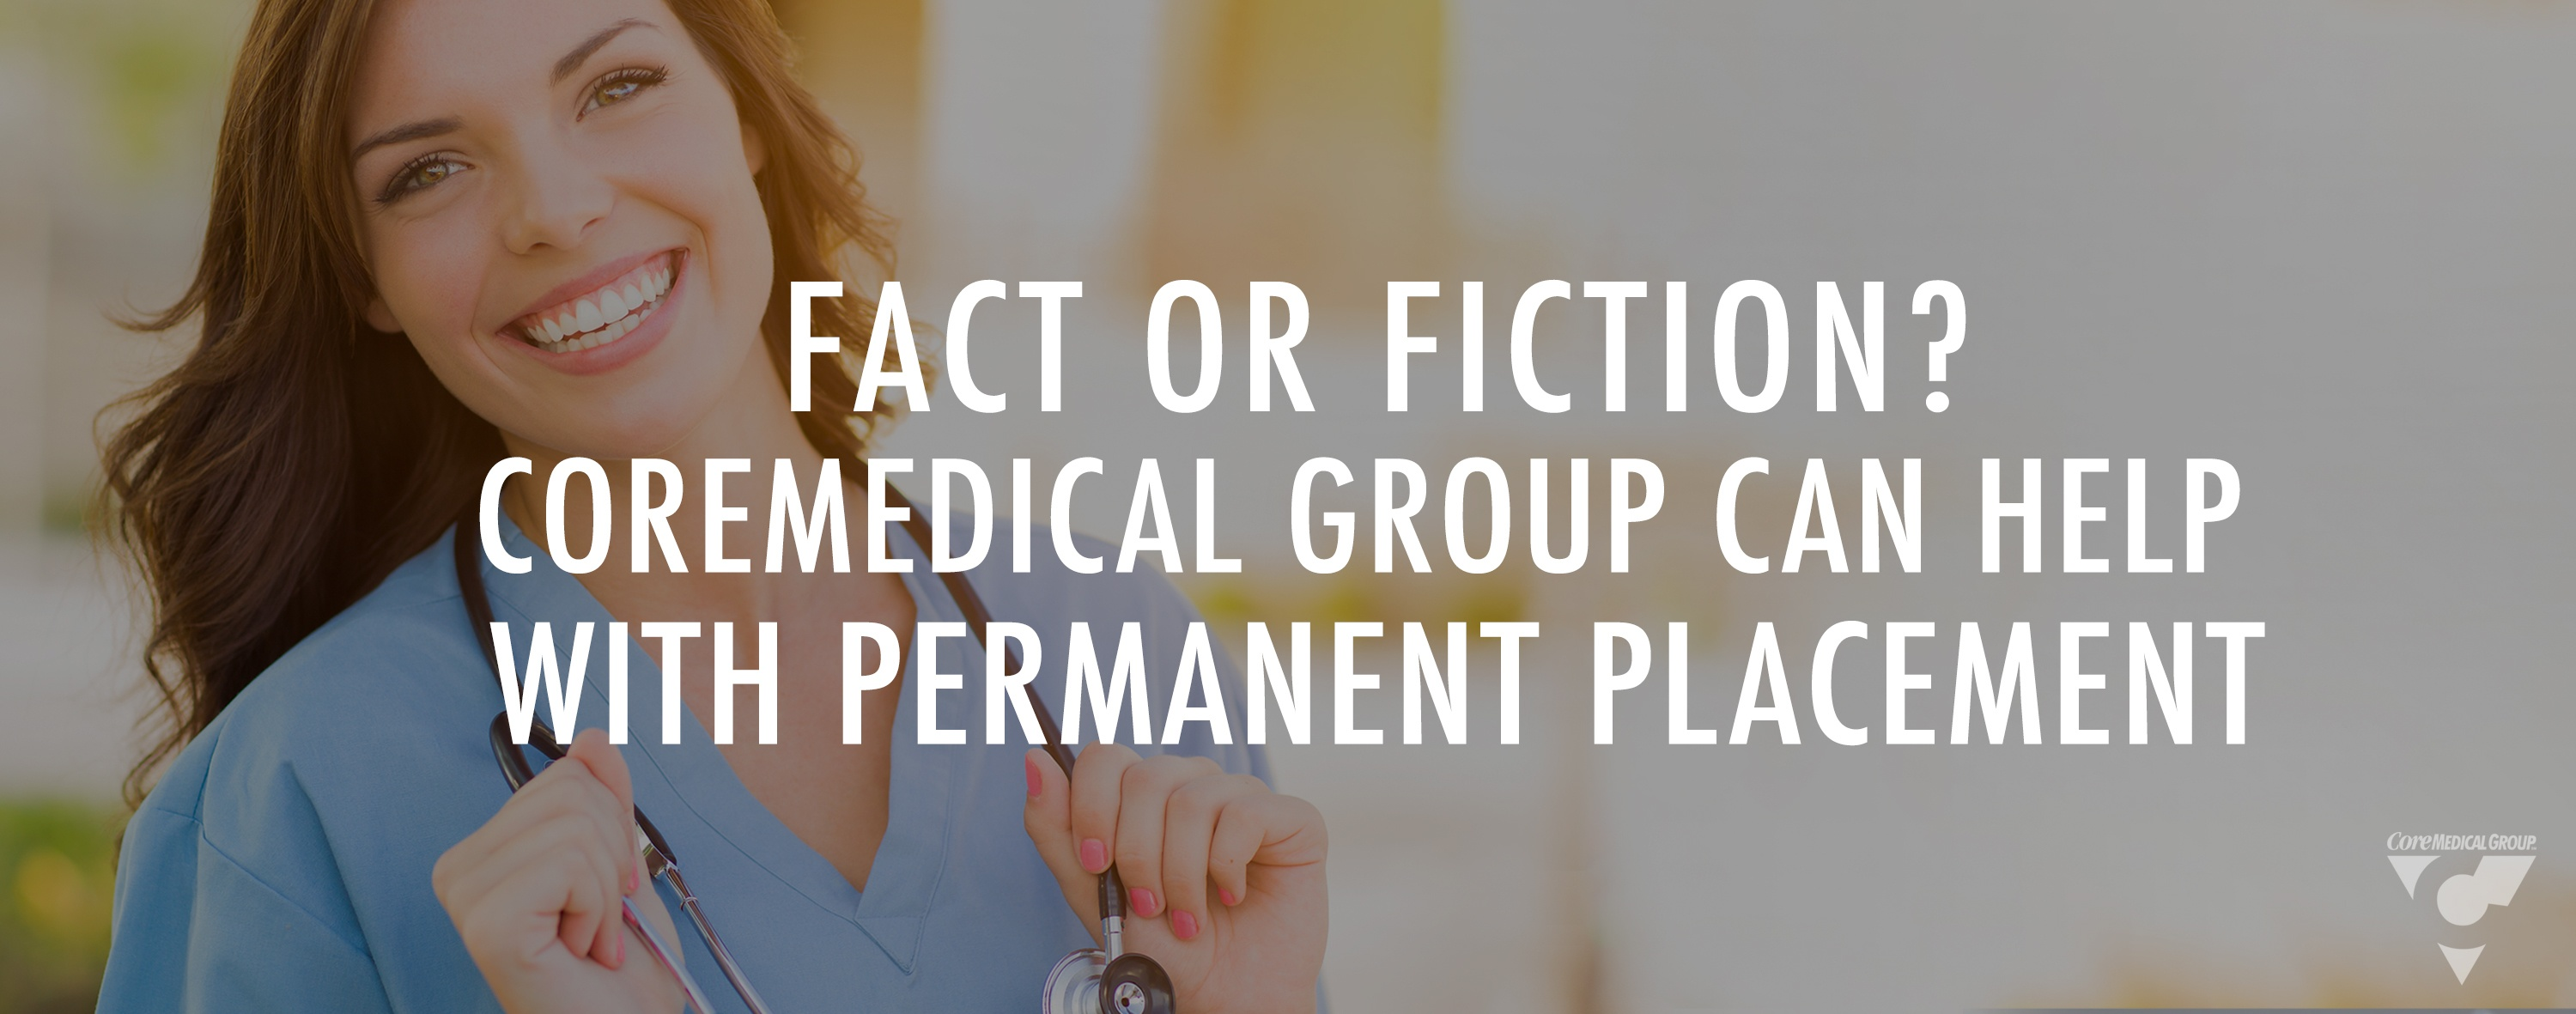 Fact or Fiction? CoreMedical Group Can Help With Permanent Placement